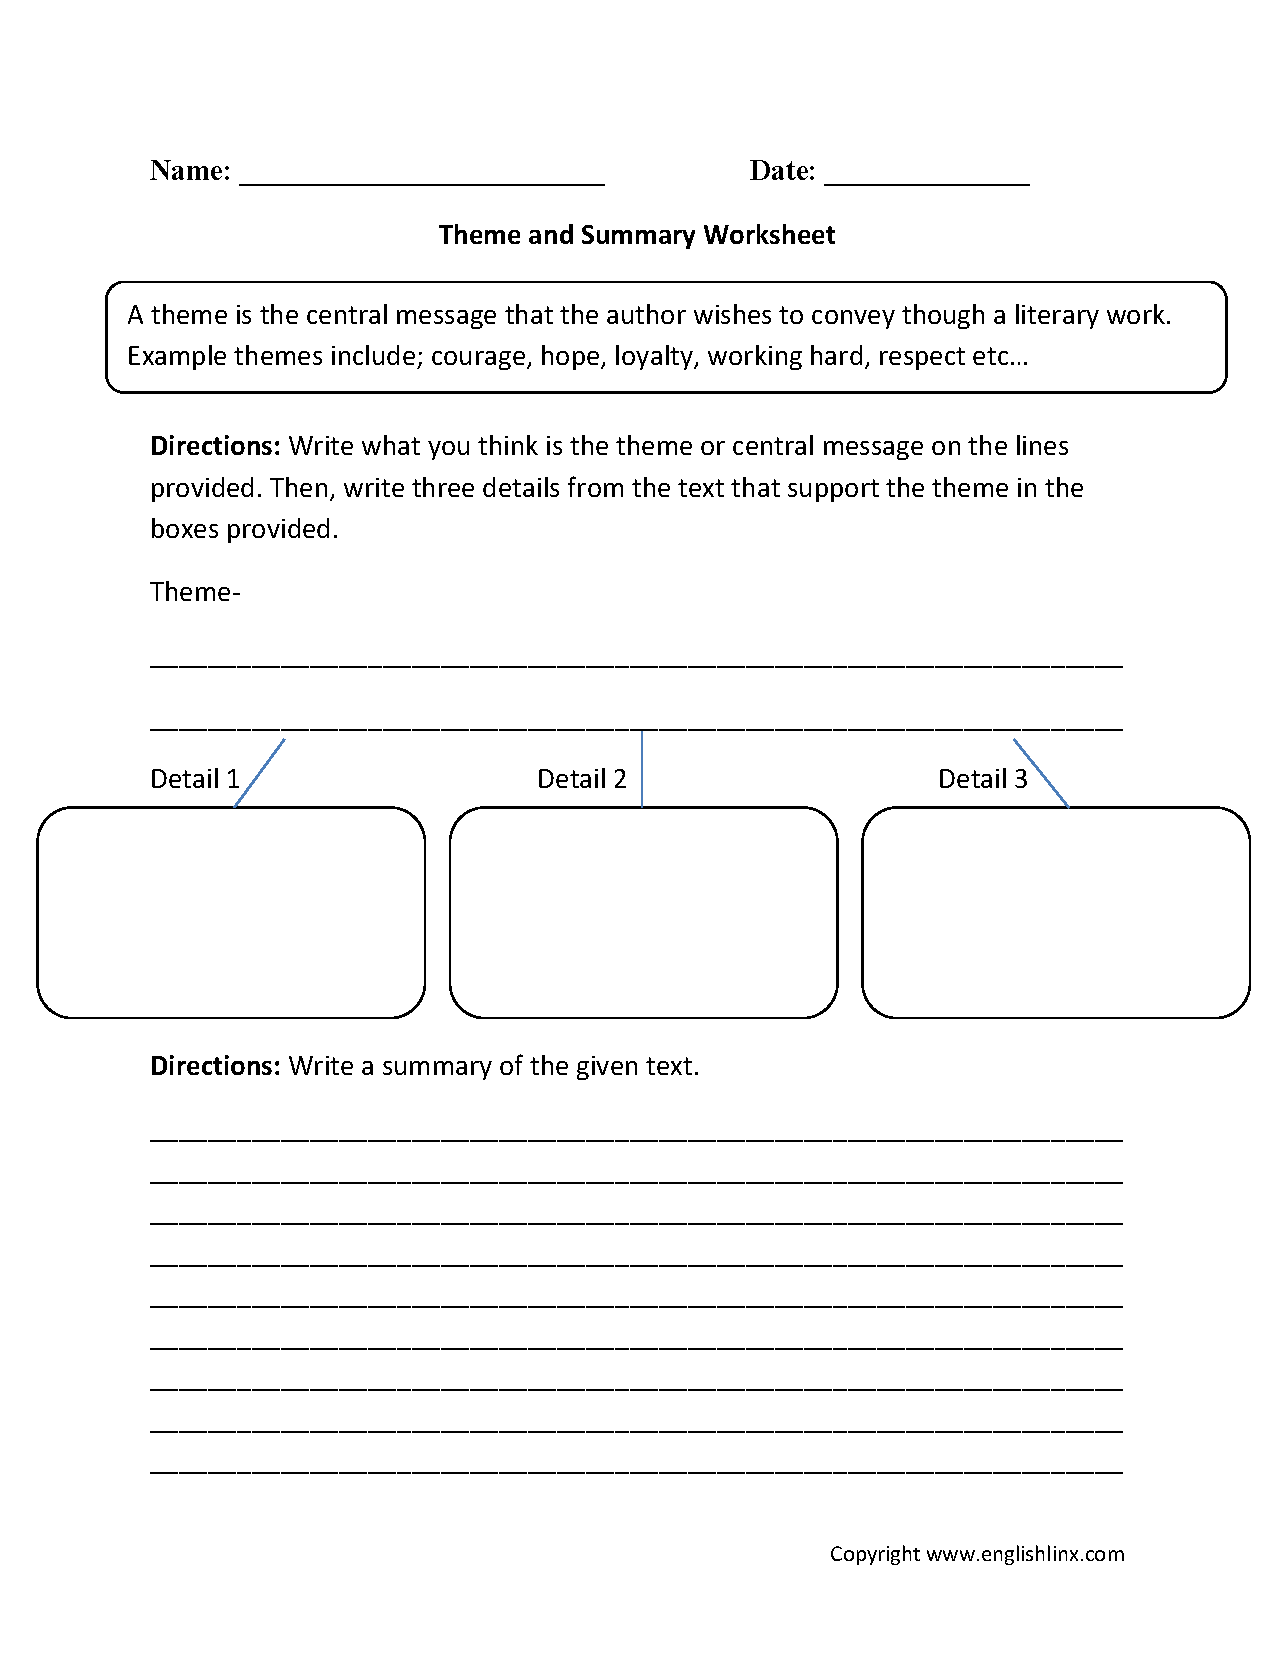 Theme Worksheets 5th Grade